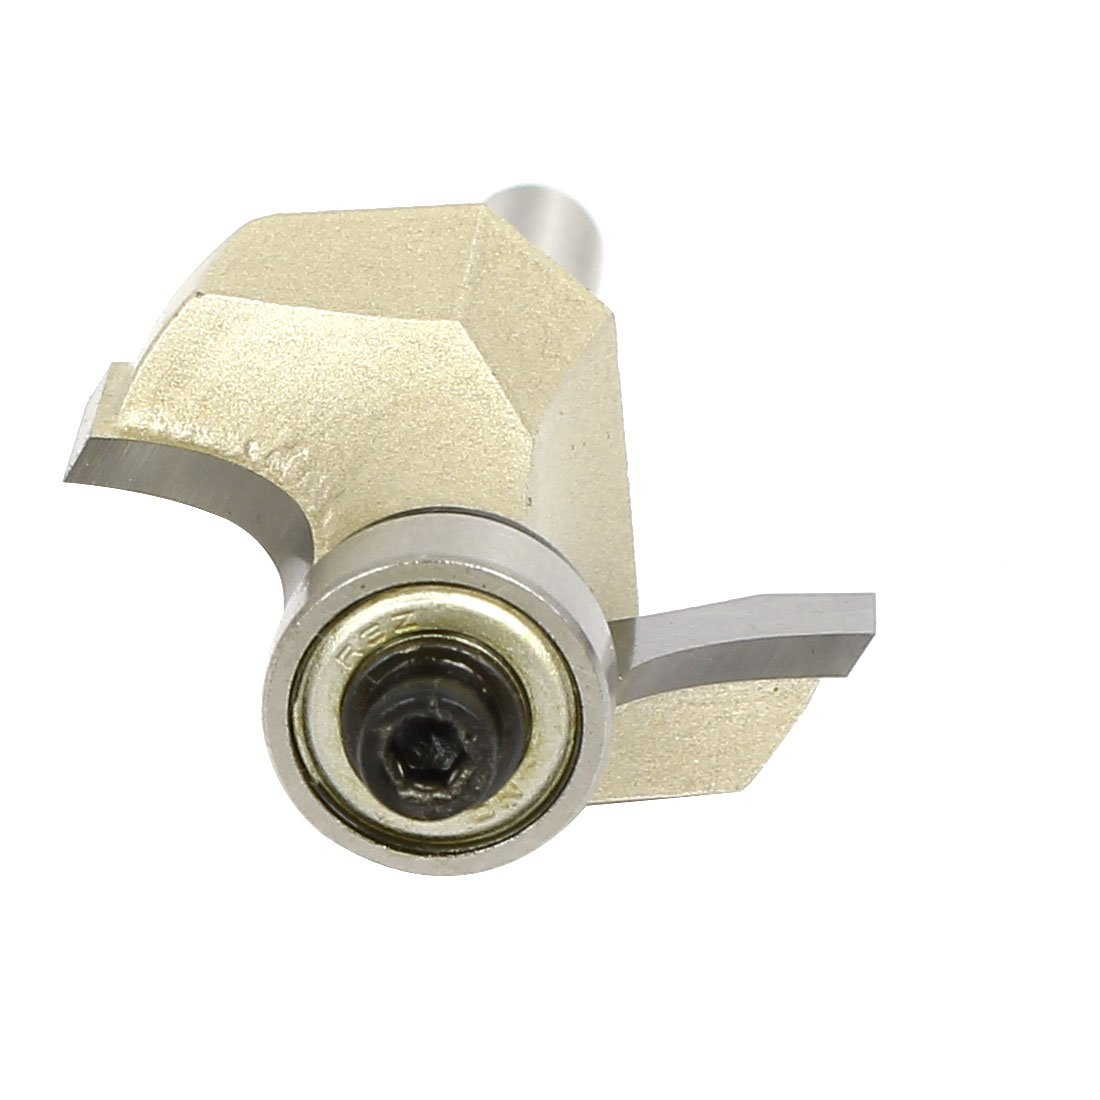 uxcell 1//4-inch Shank 3//4-inch Cutting Dia 2 Flutes Corner Round Roundover Router Bit